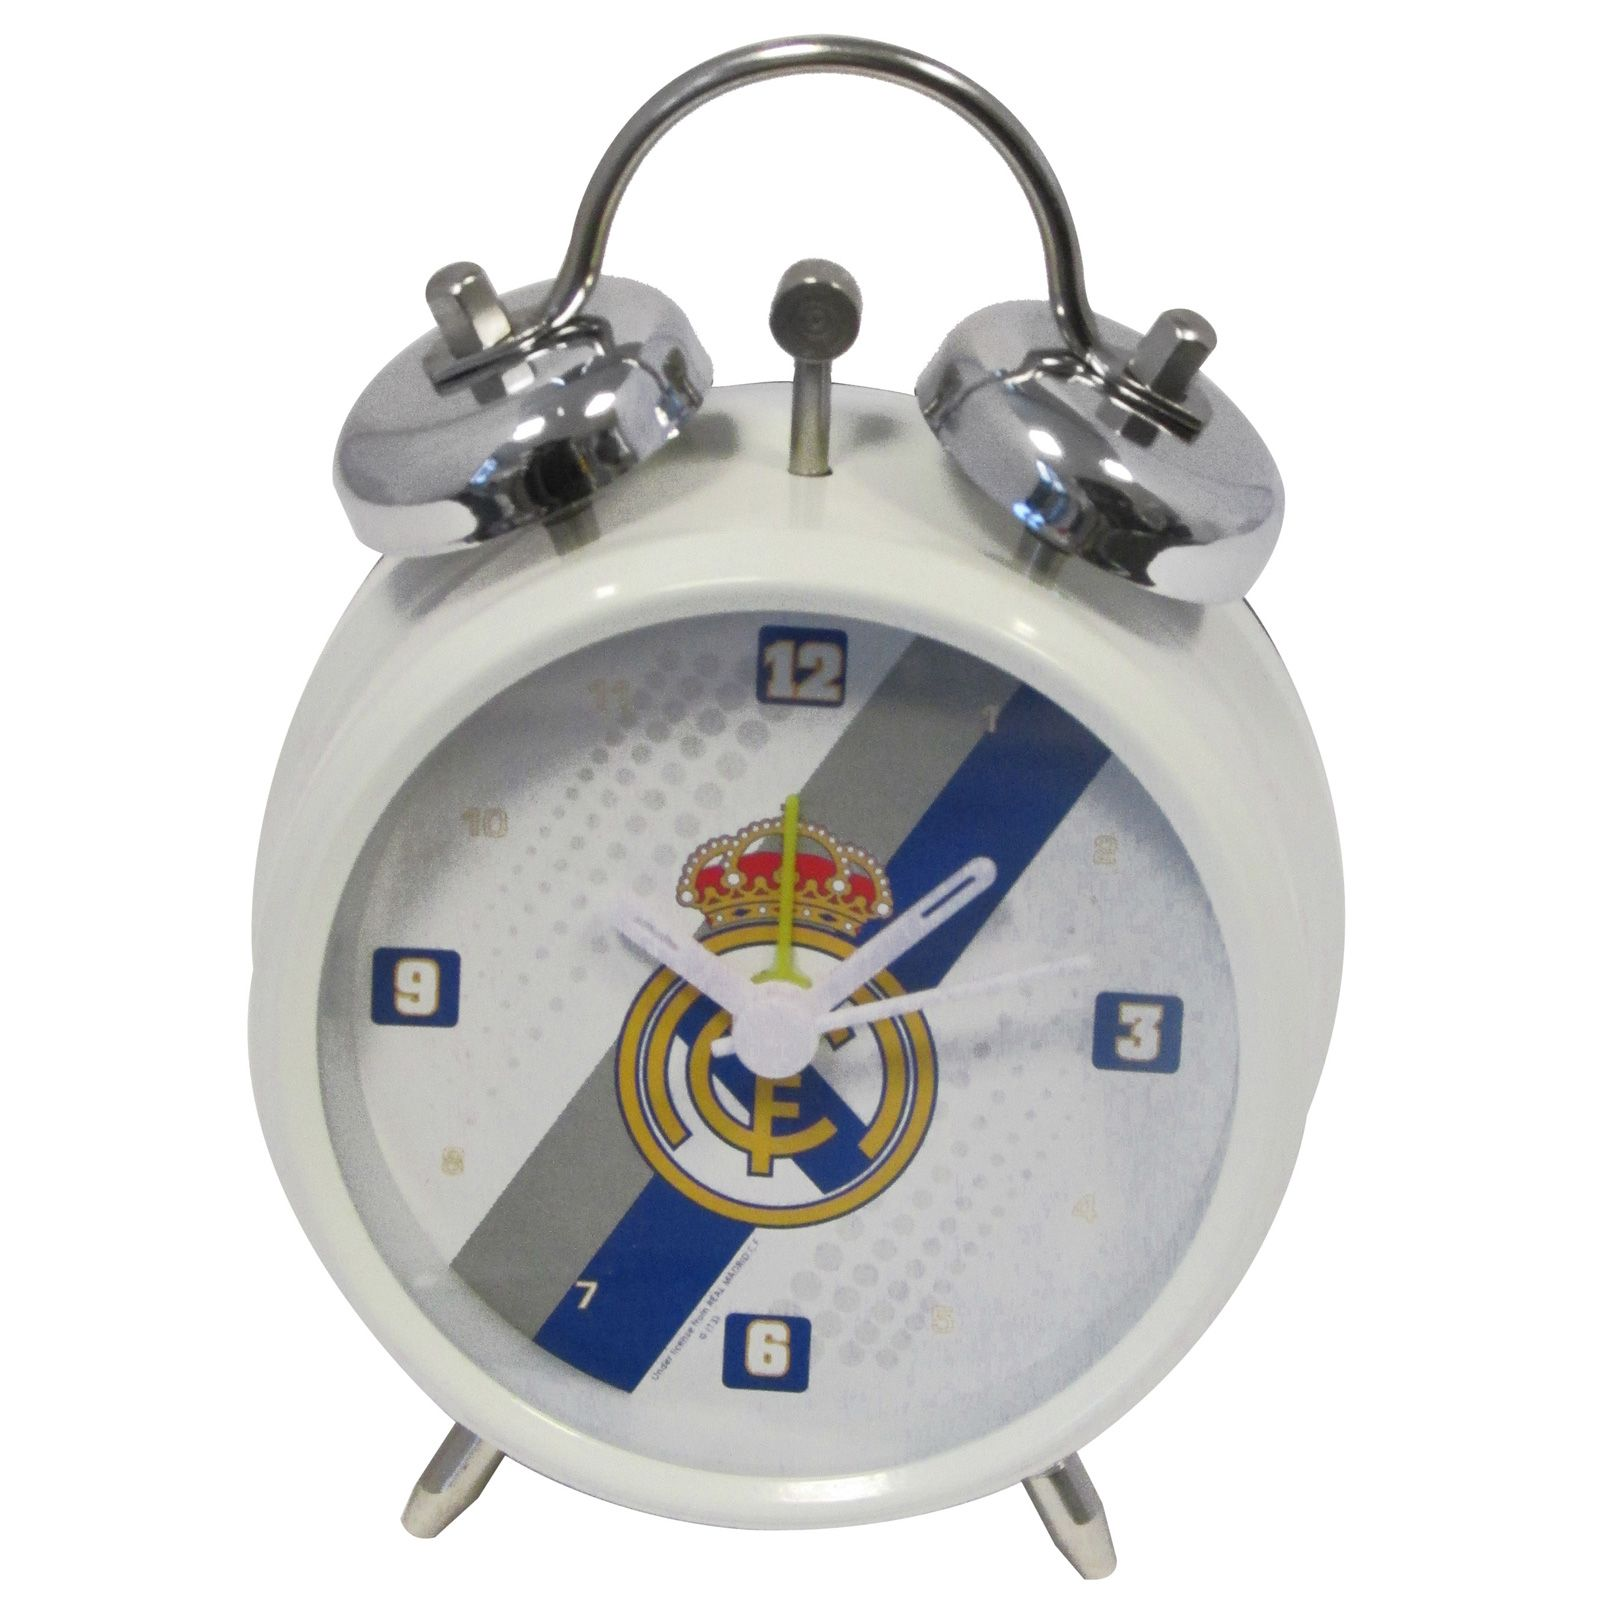 REAL MADRID BEDDING AND BEDROOM ACCESSORIES FOOTBALL BOYS NEW